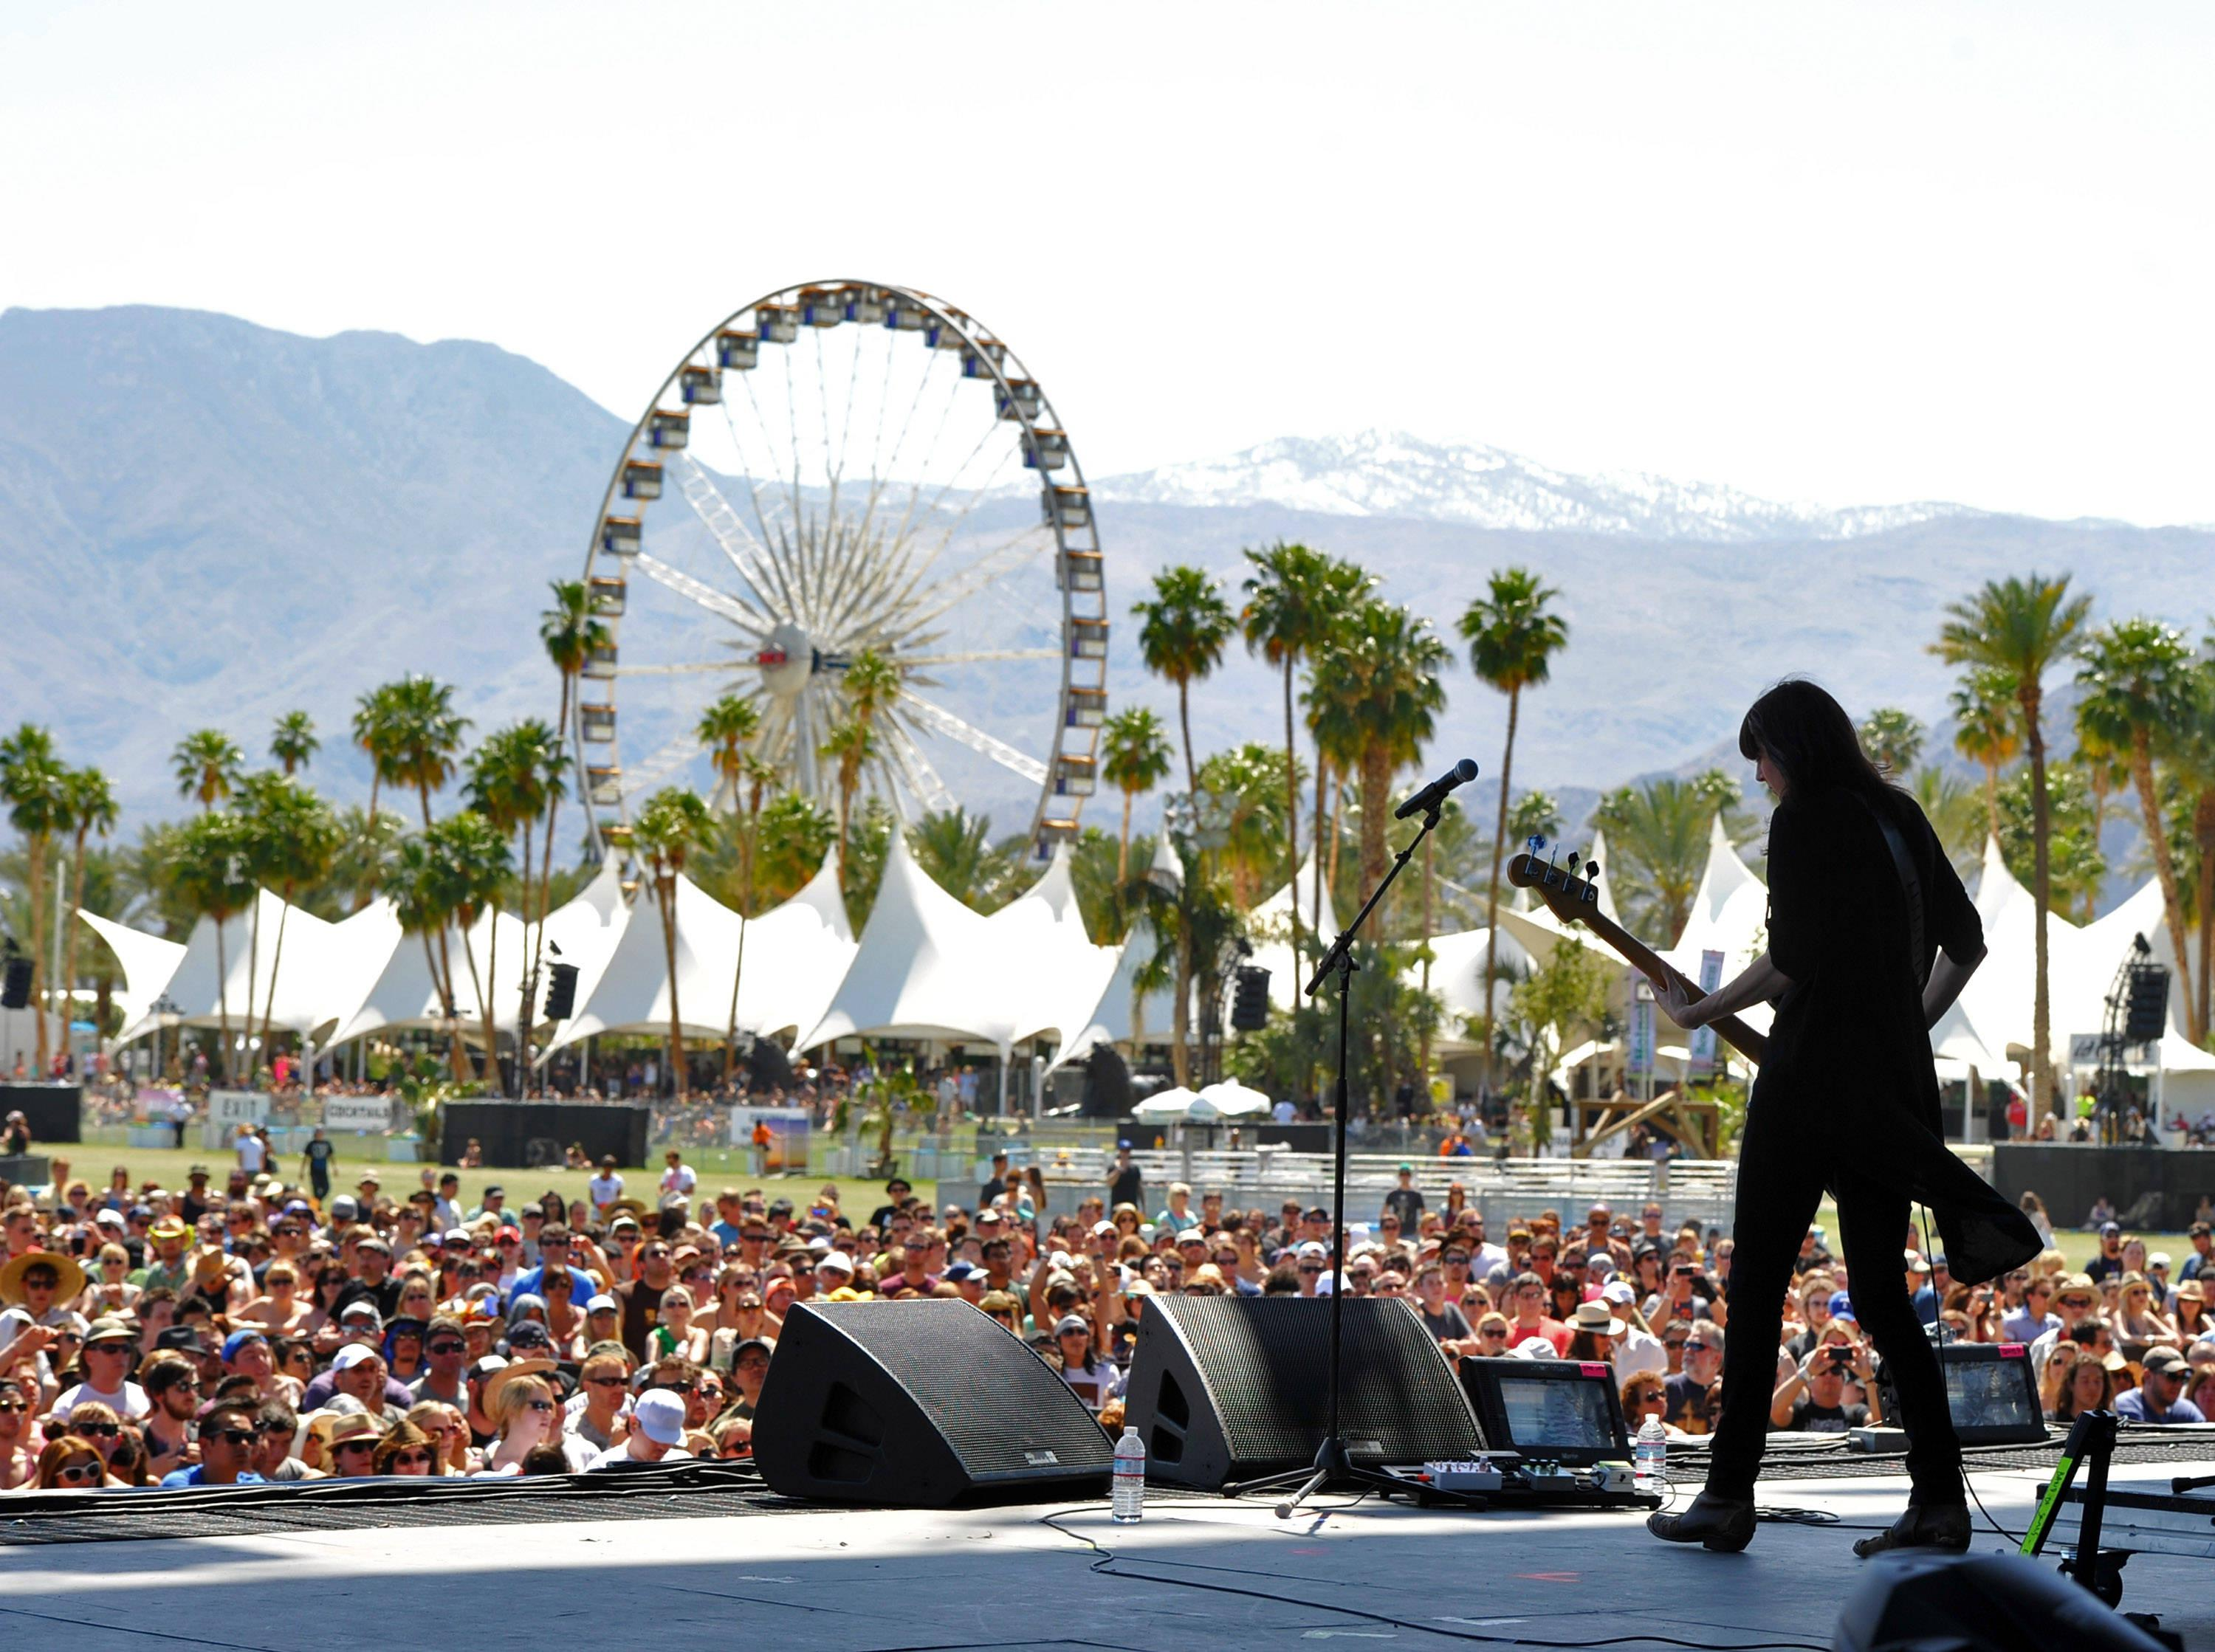 Tickets for Coachella Sold Out in Just 15 Minutes! от Marinara за 30 jan 2013